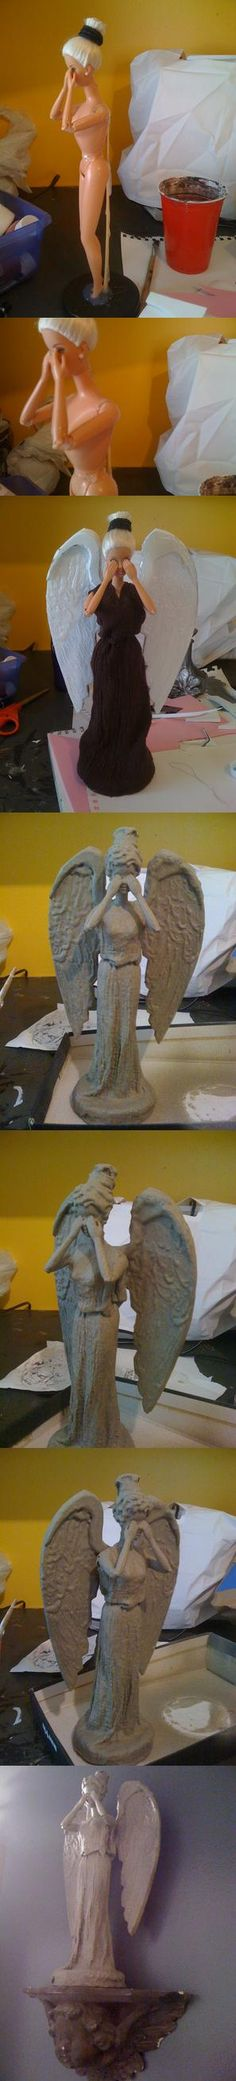 Found it! How-to Weeping Angel